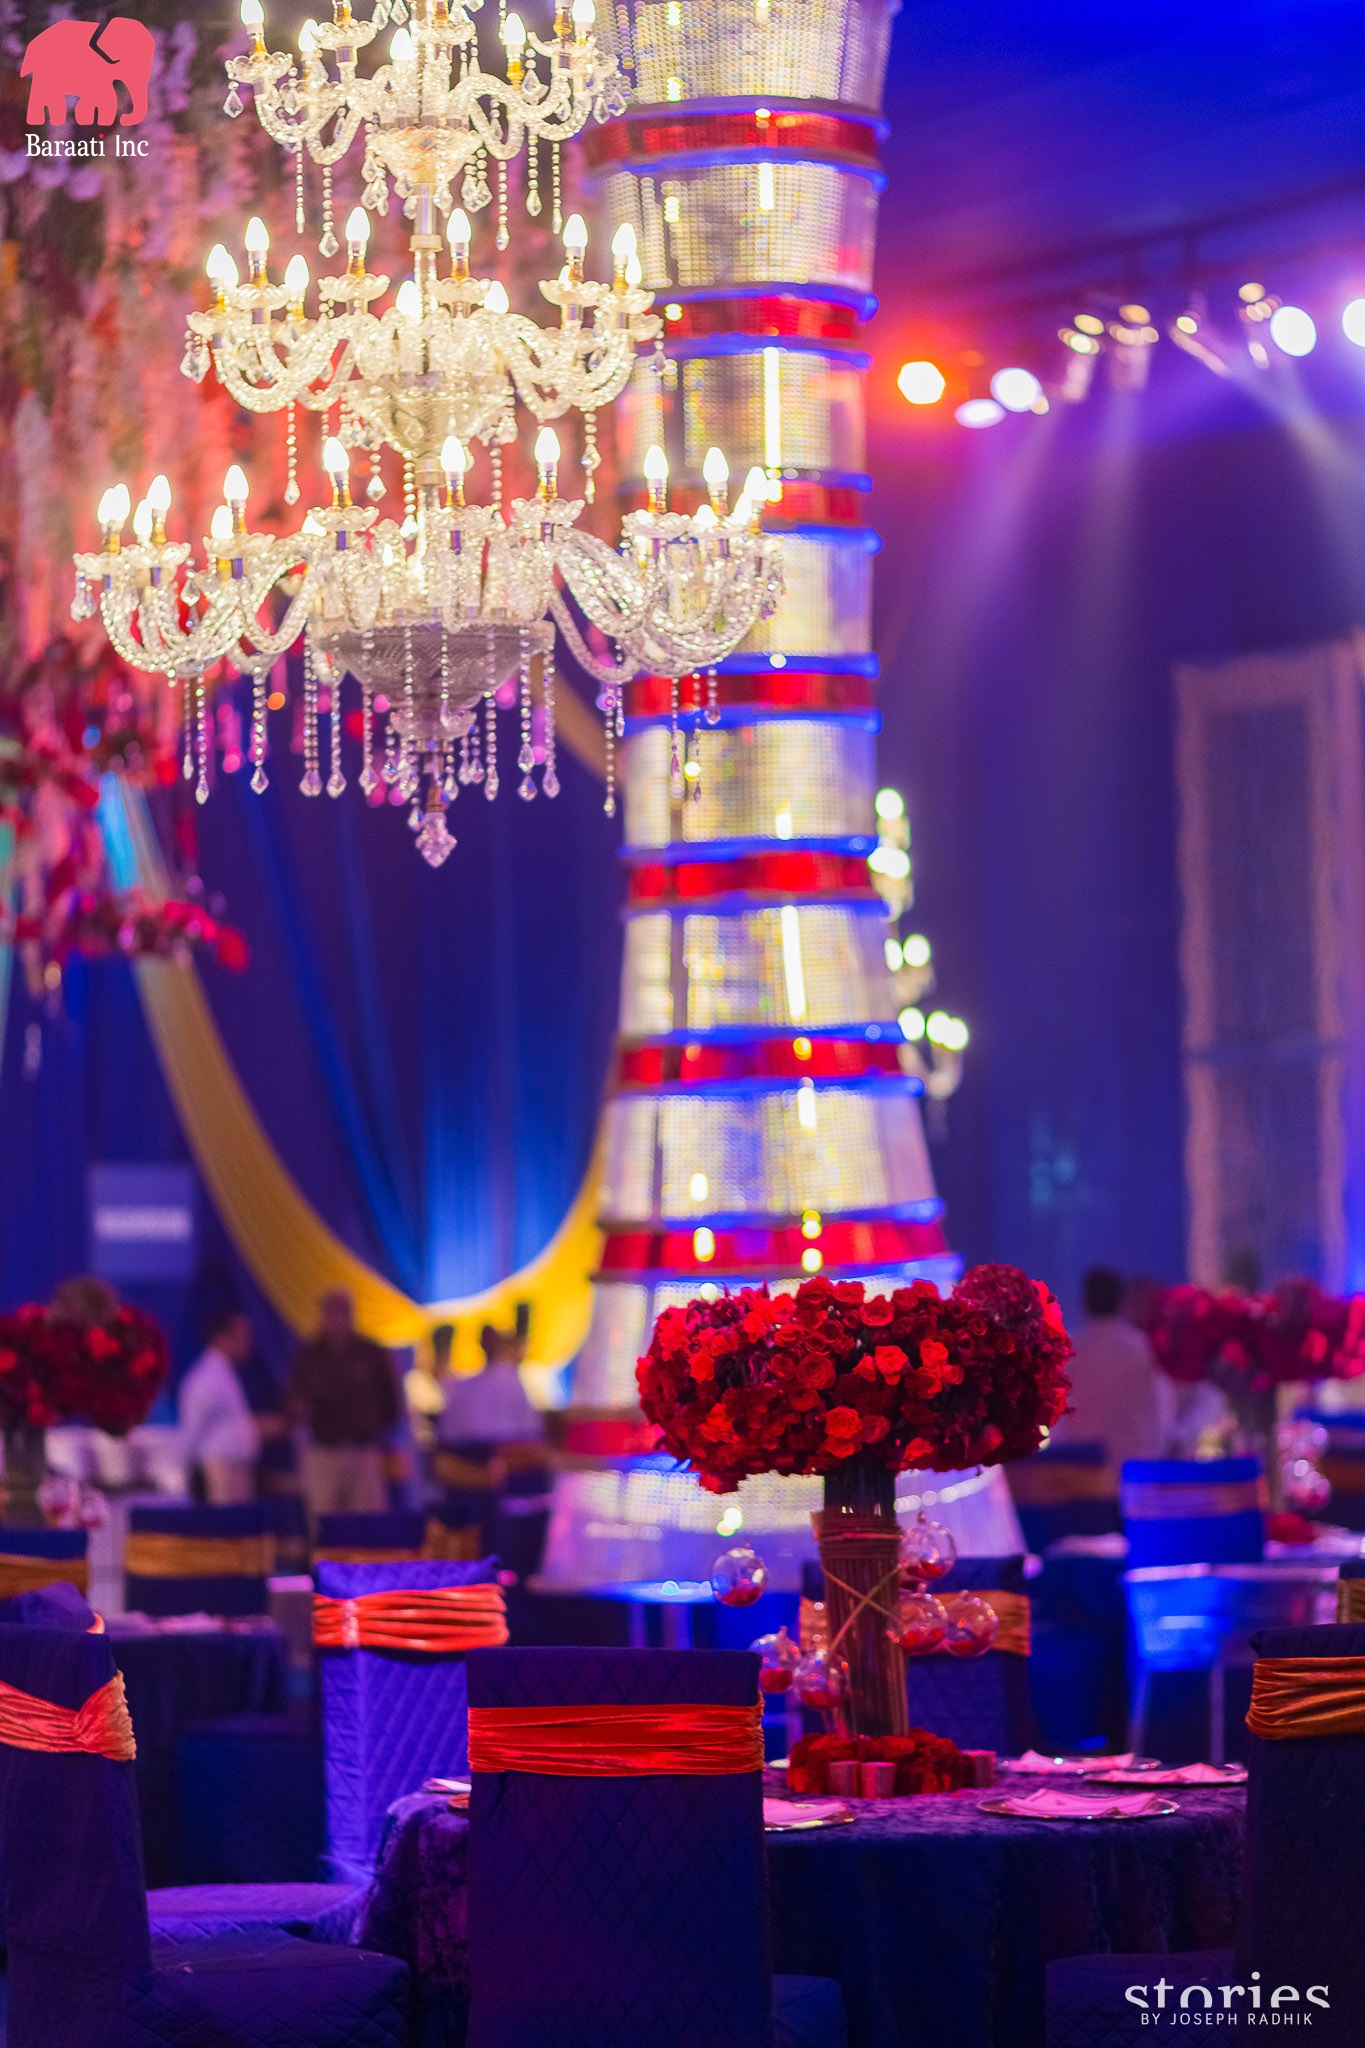 Beautiful wedding decor planned by Baraati Inc